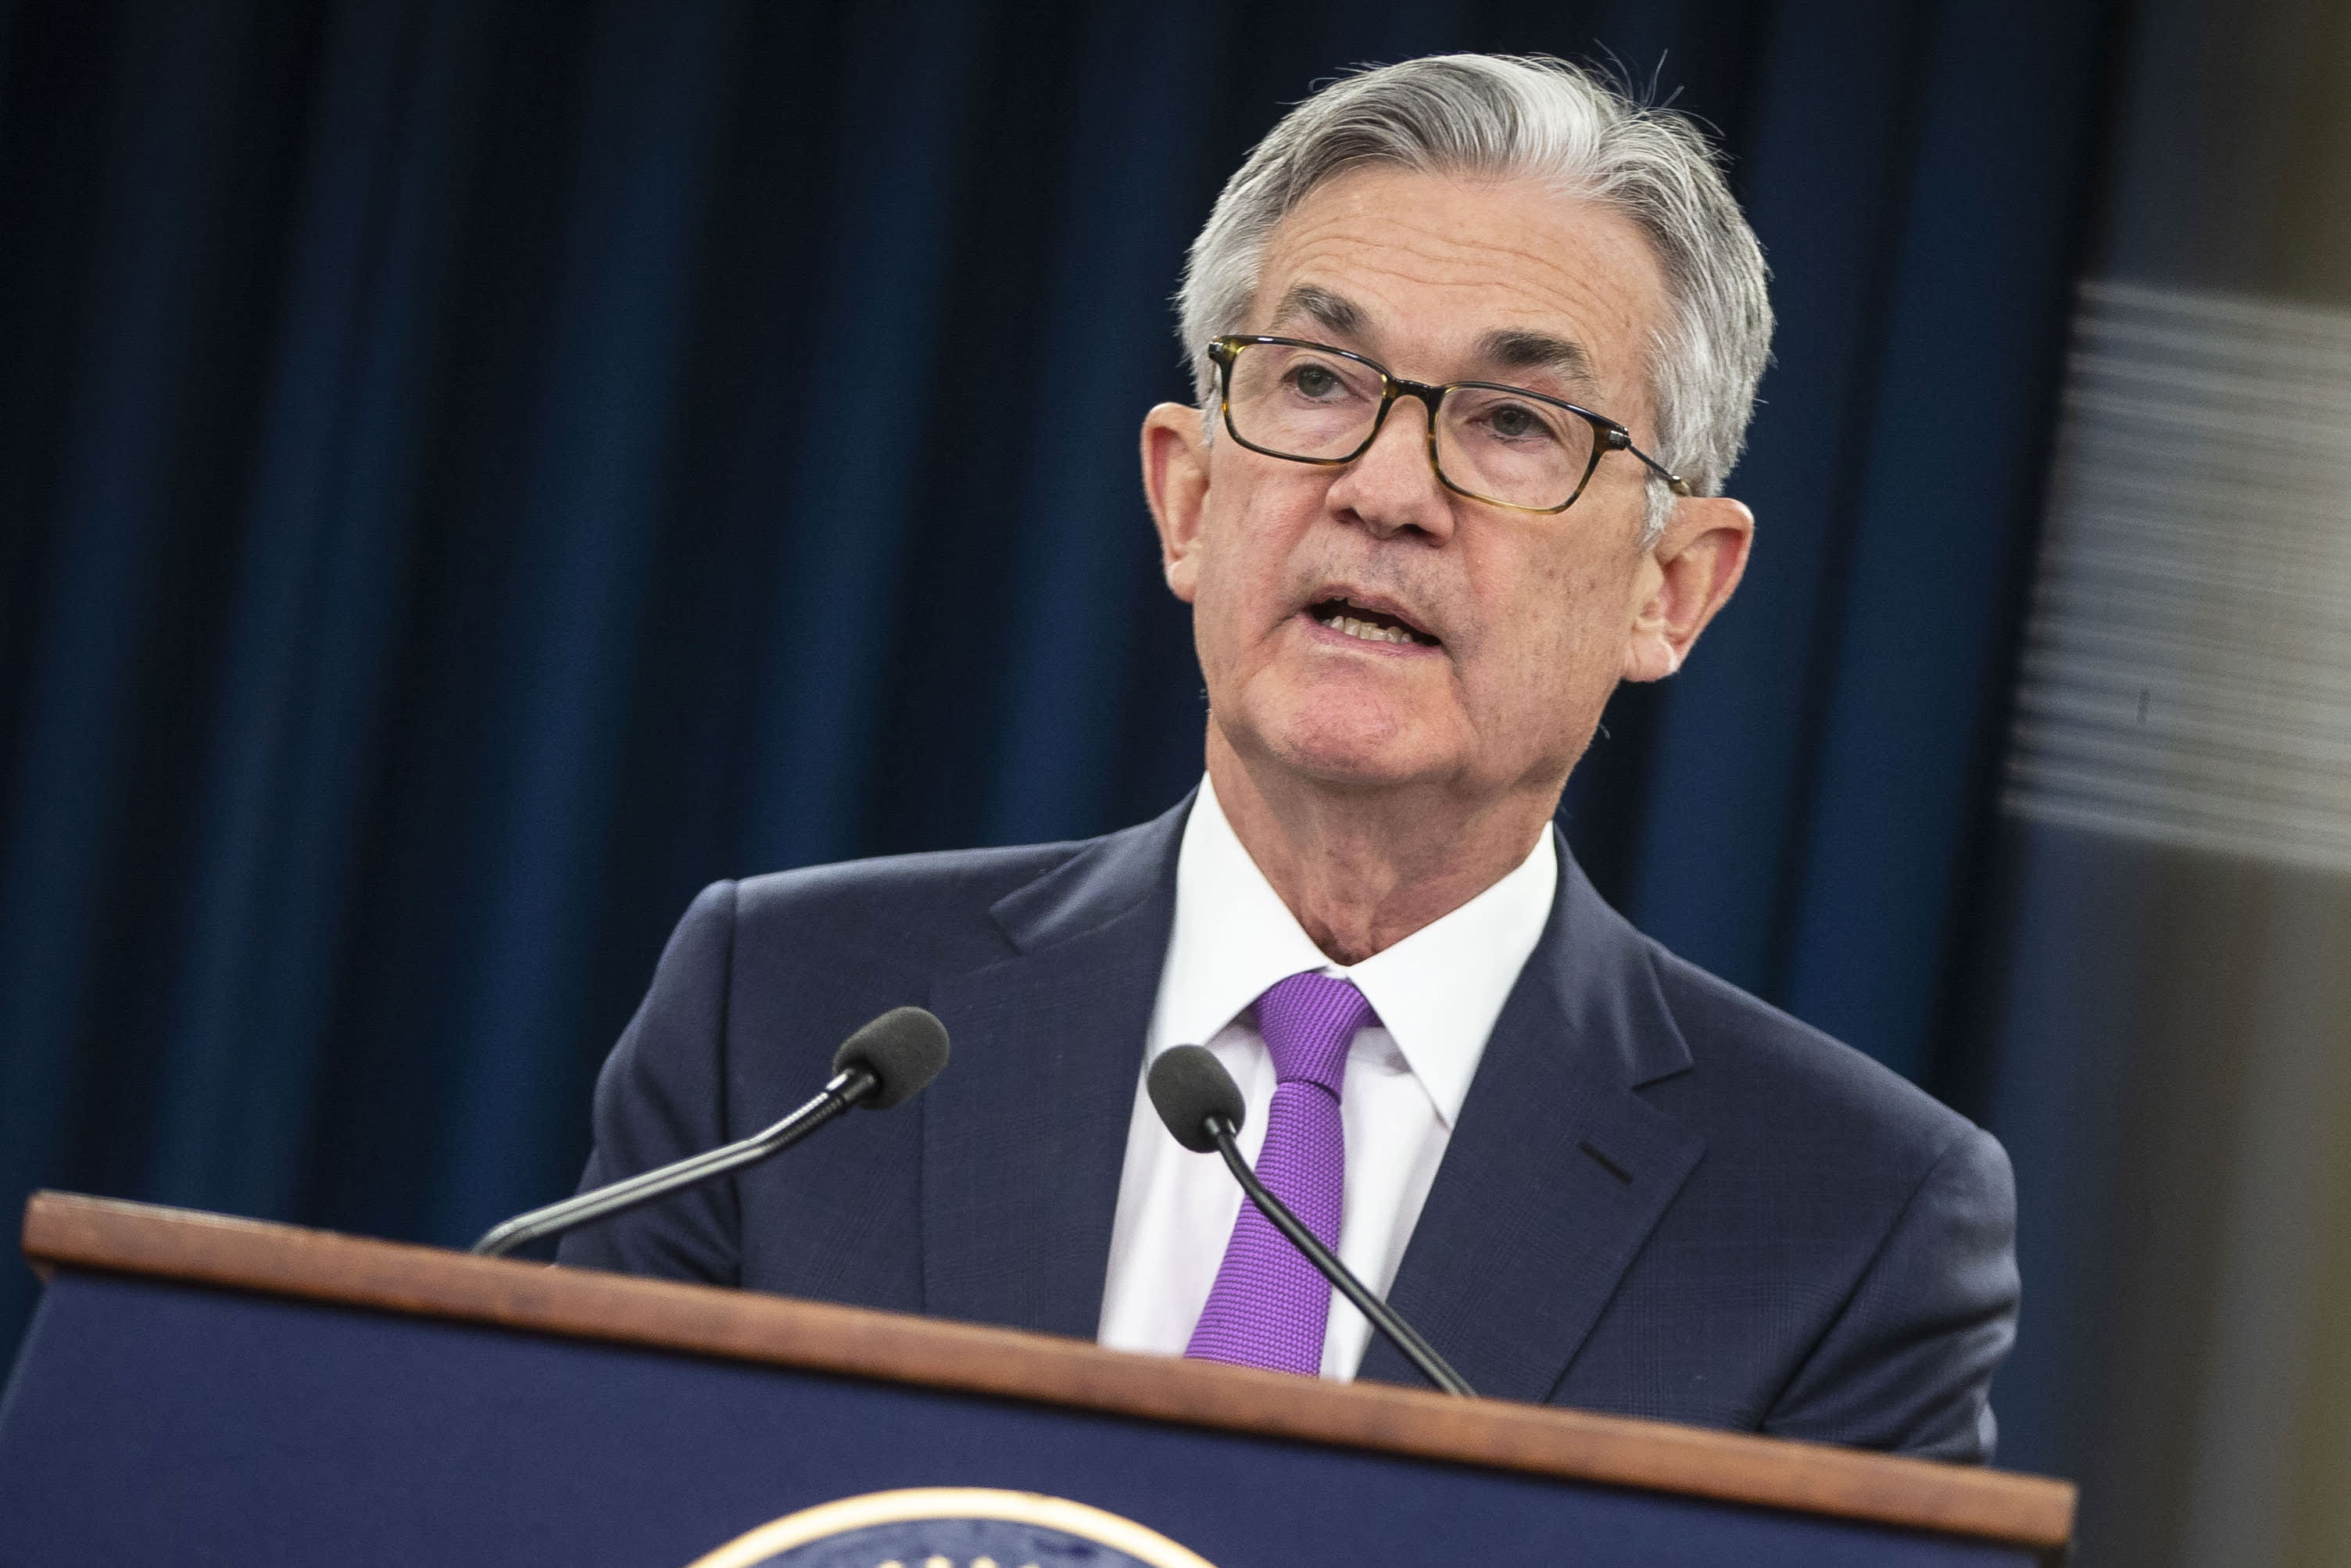 Fed cuts interest rates, but indicates a pause is ahead